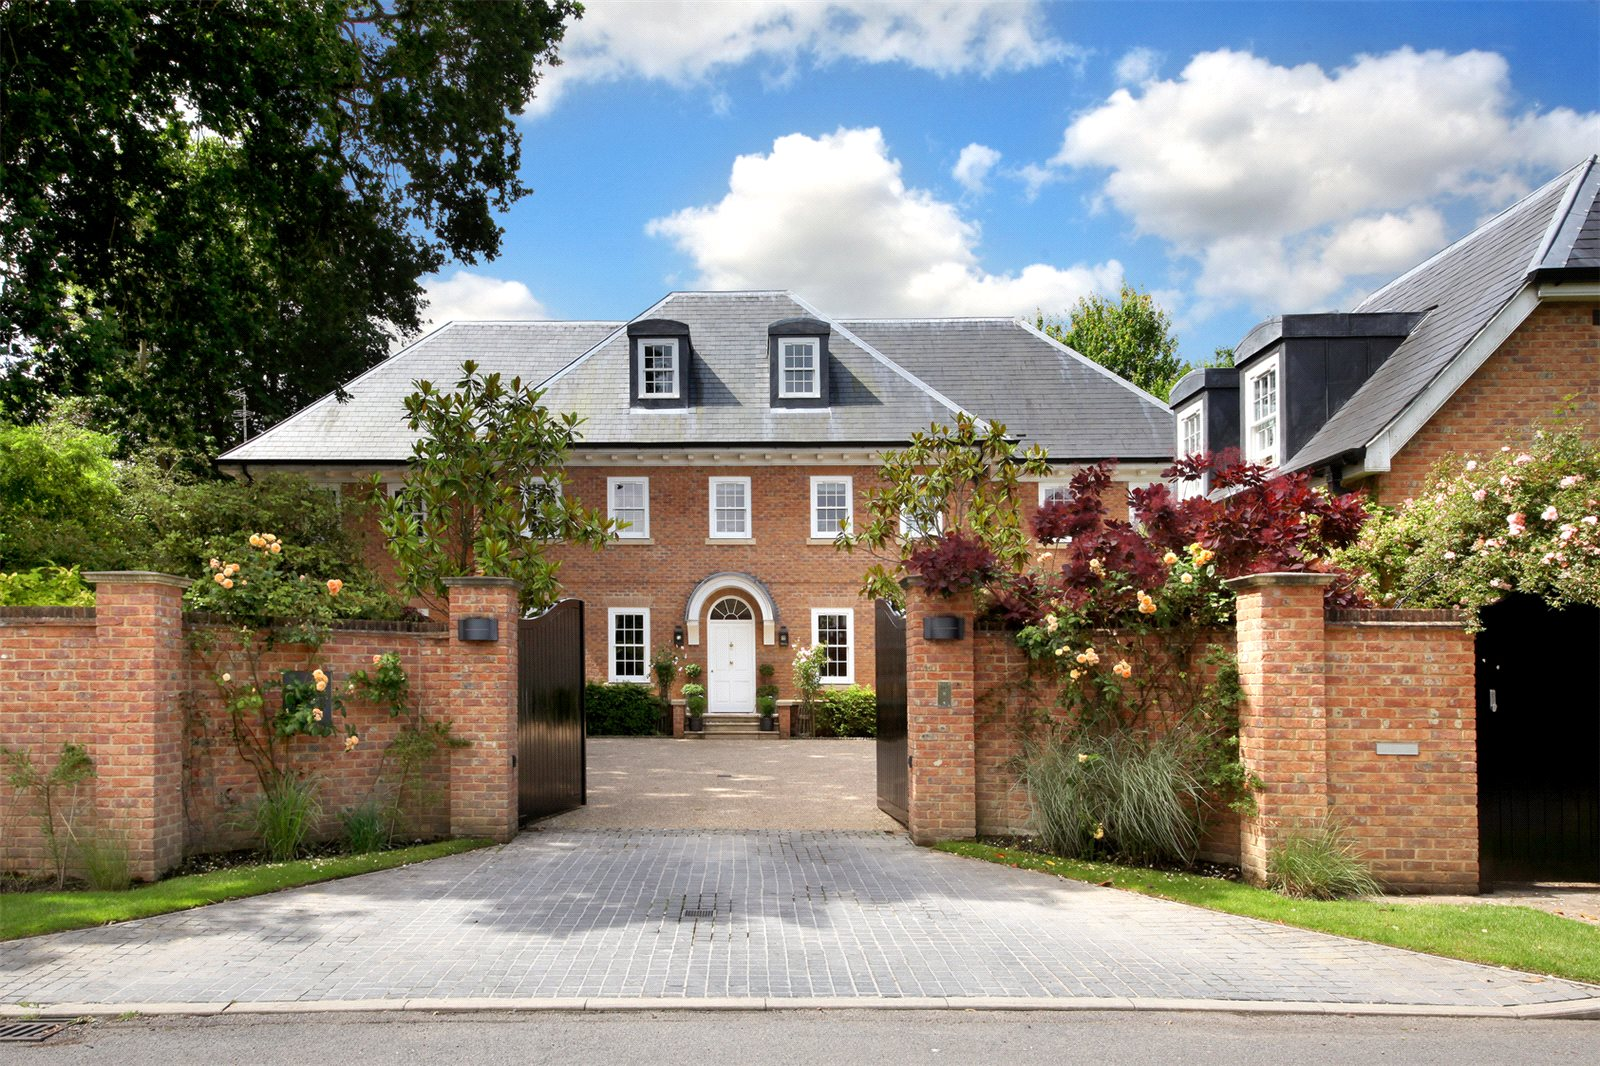 Single Family Home for Sale at Priory Road, Sunningdale, Berkshire, SL5 Sunningdale, England